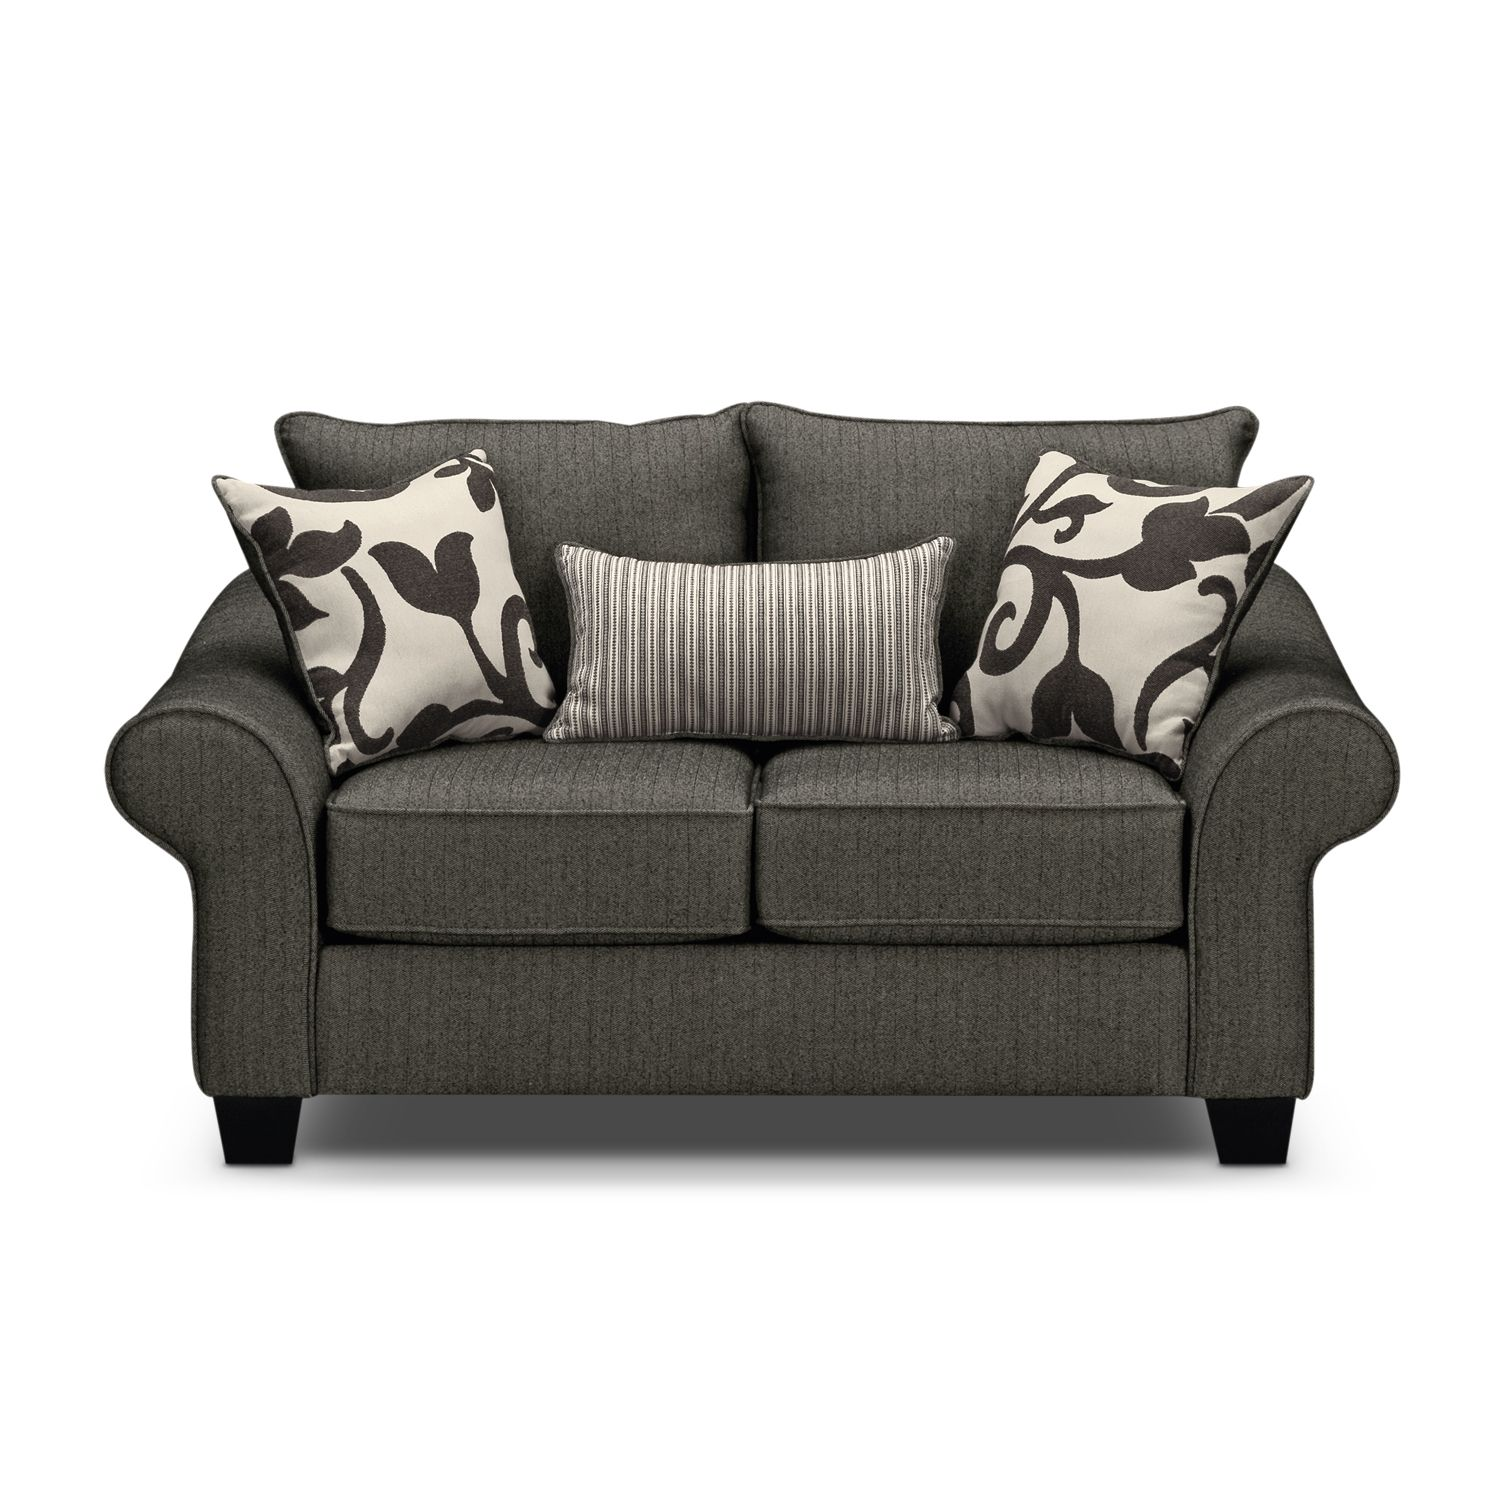 Colette Gray Loveseat Love Seat Sofa And Loveseat Set